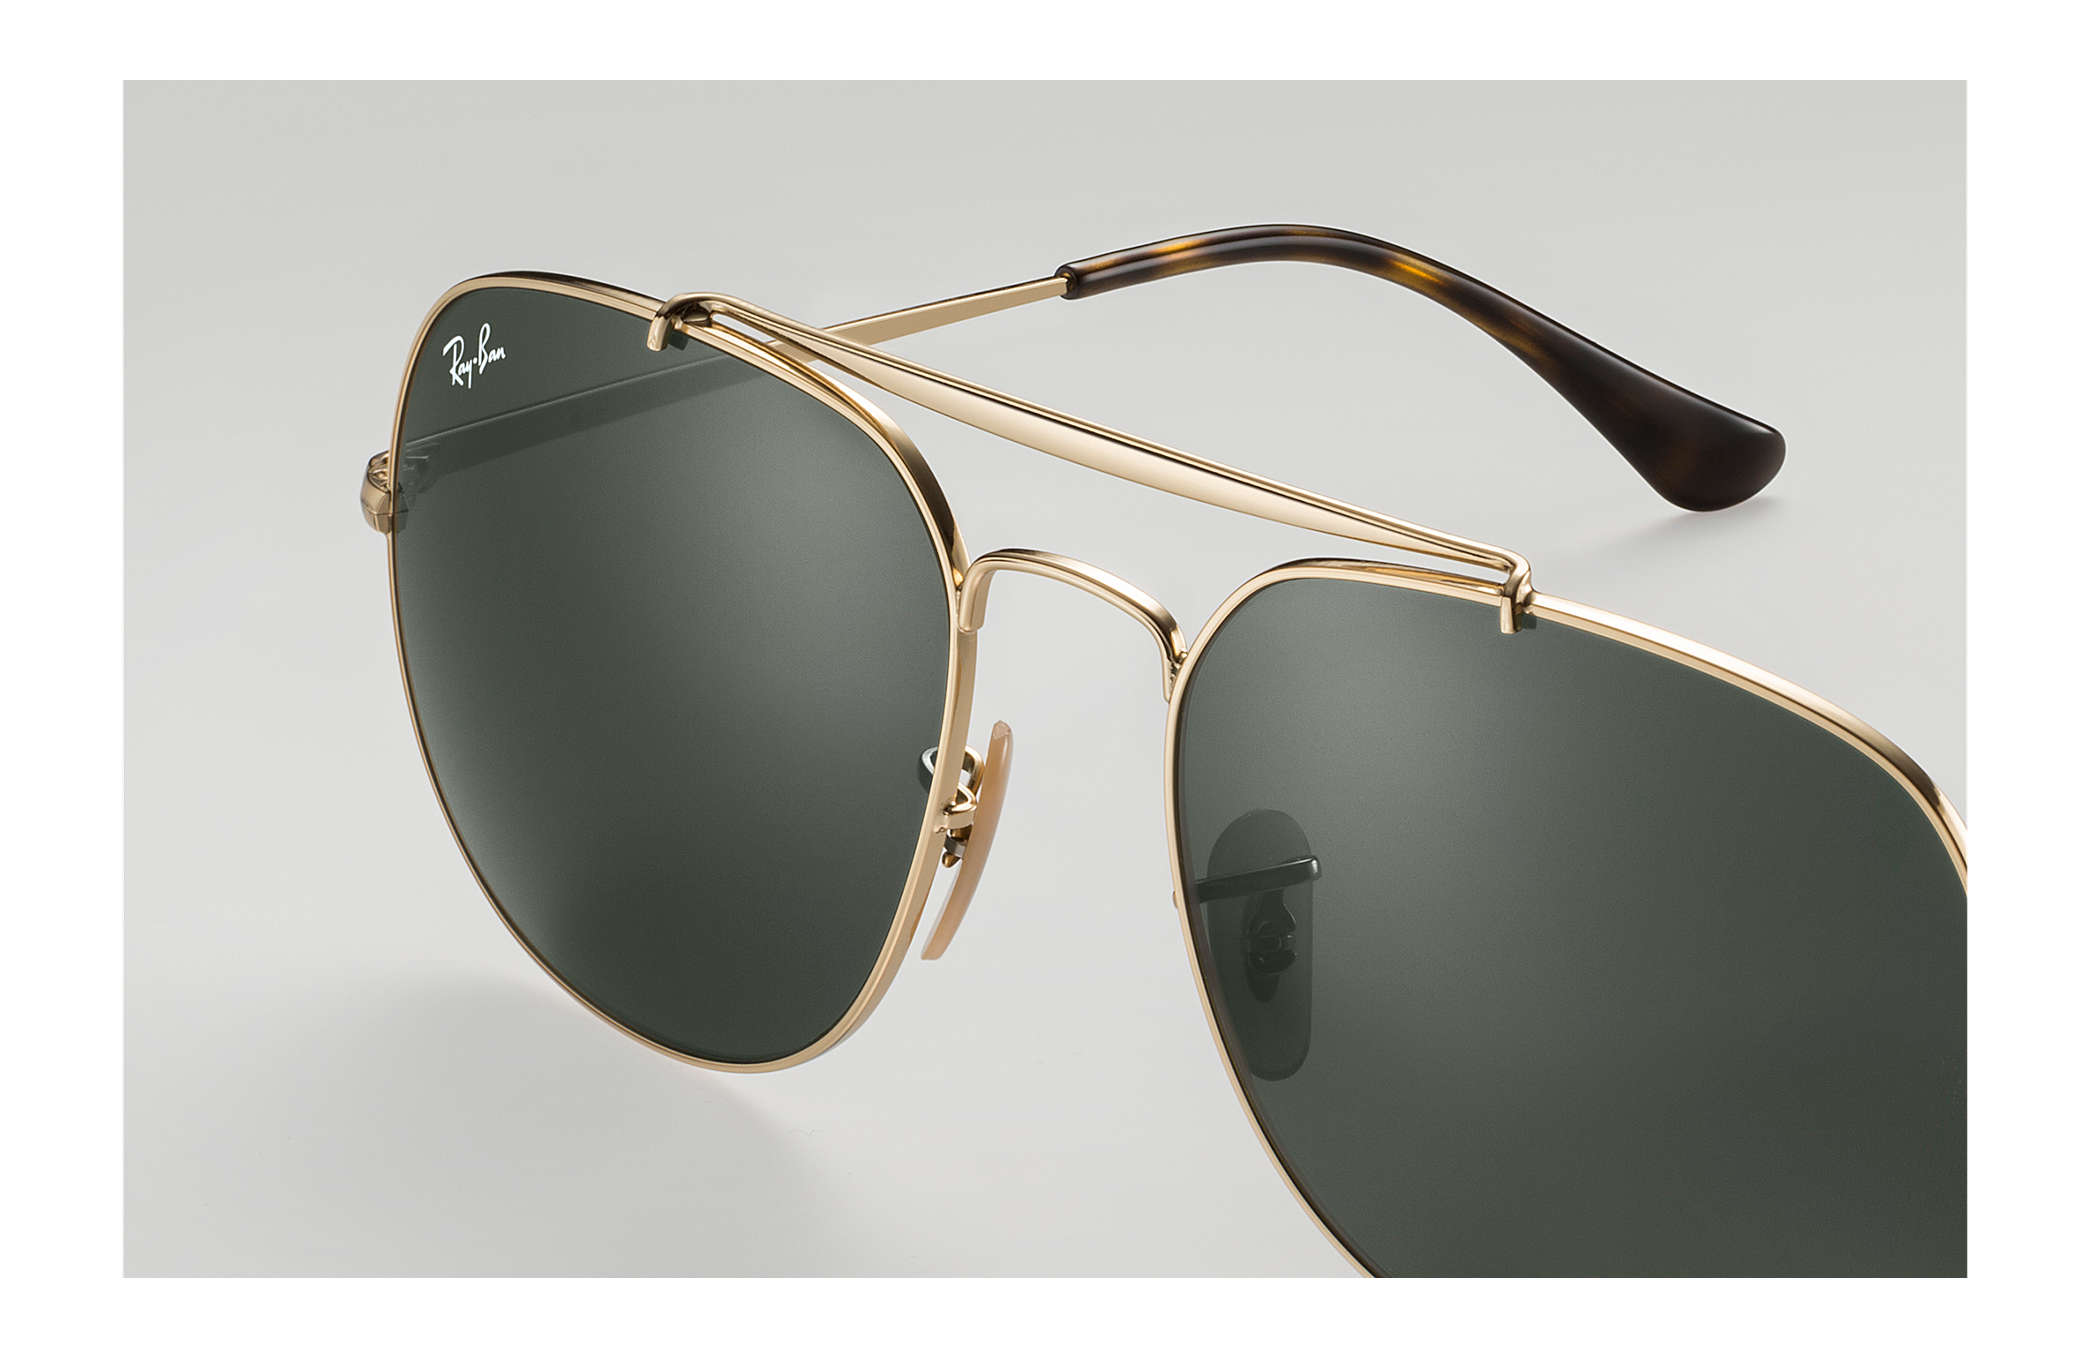 6fa122fa74be5 Ray-Ban General RB3561 Gold - Metal - Green Lenses - 0RB356100157 ...